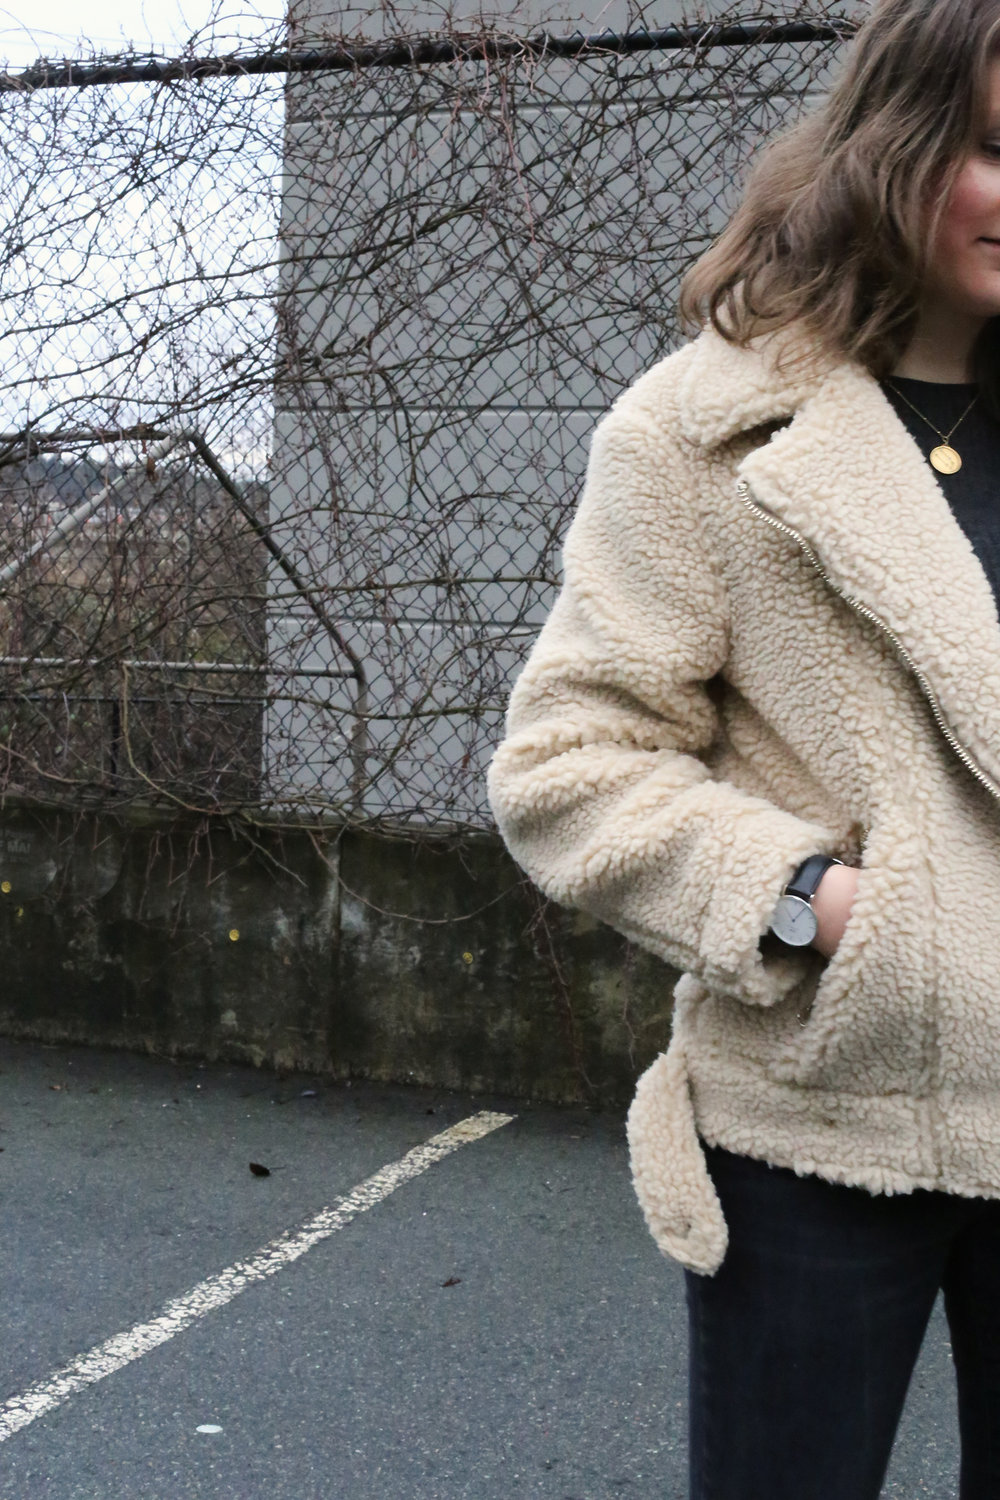 Minimalist street style - kendra hagerman of Kendra Found It.